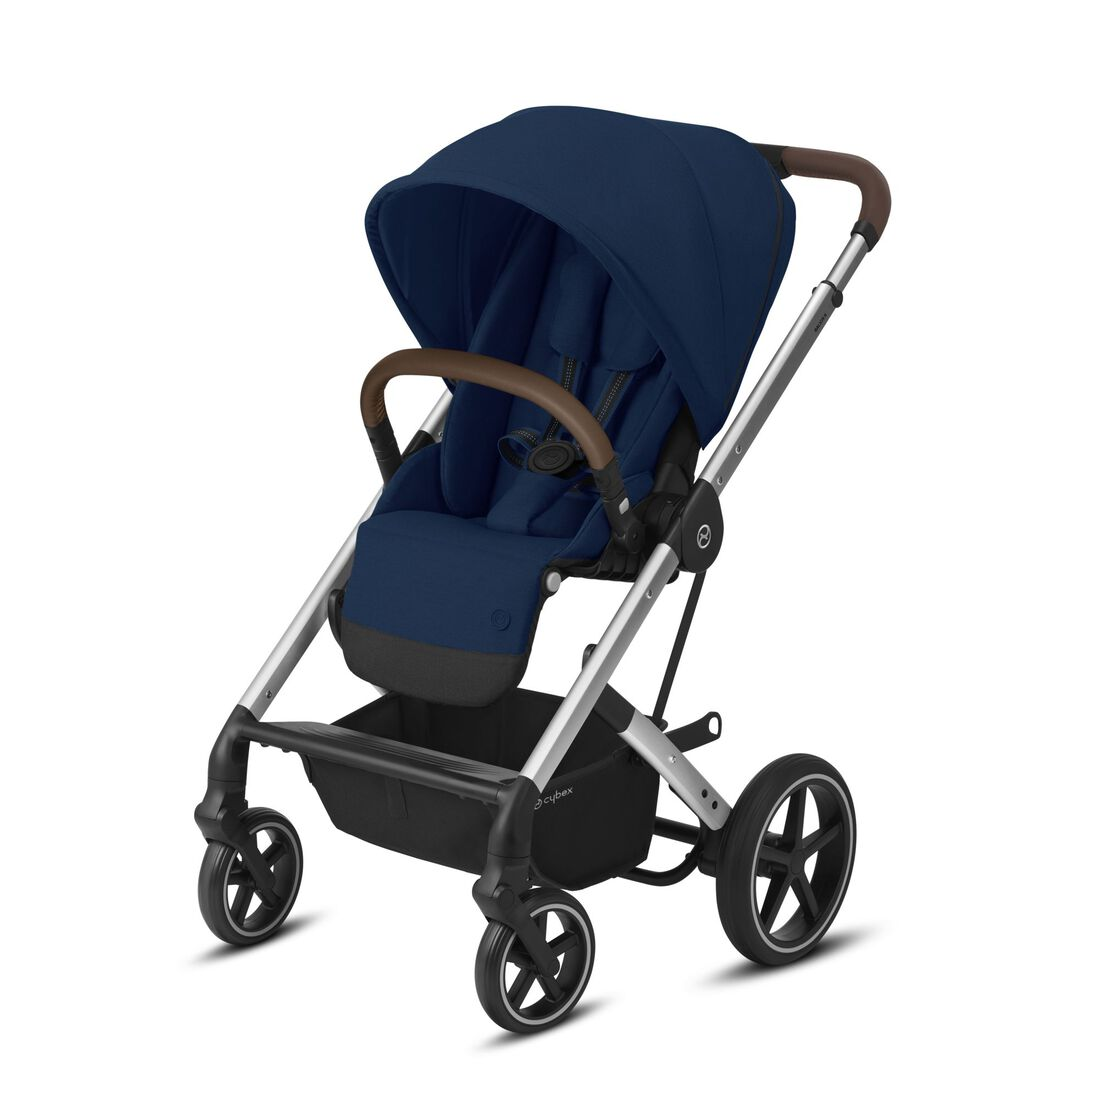 CYBEX Balios S Lux - Navy Blue (Silver Frame) in Navy Blue (Silver Frame) large image number 1